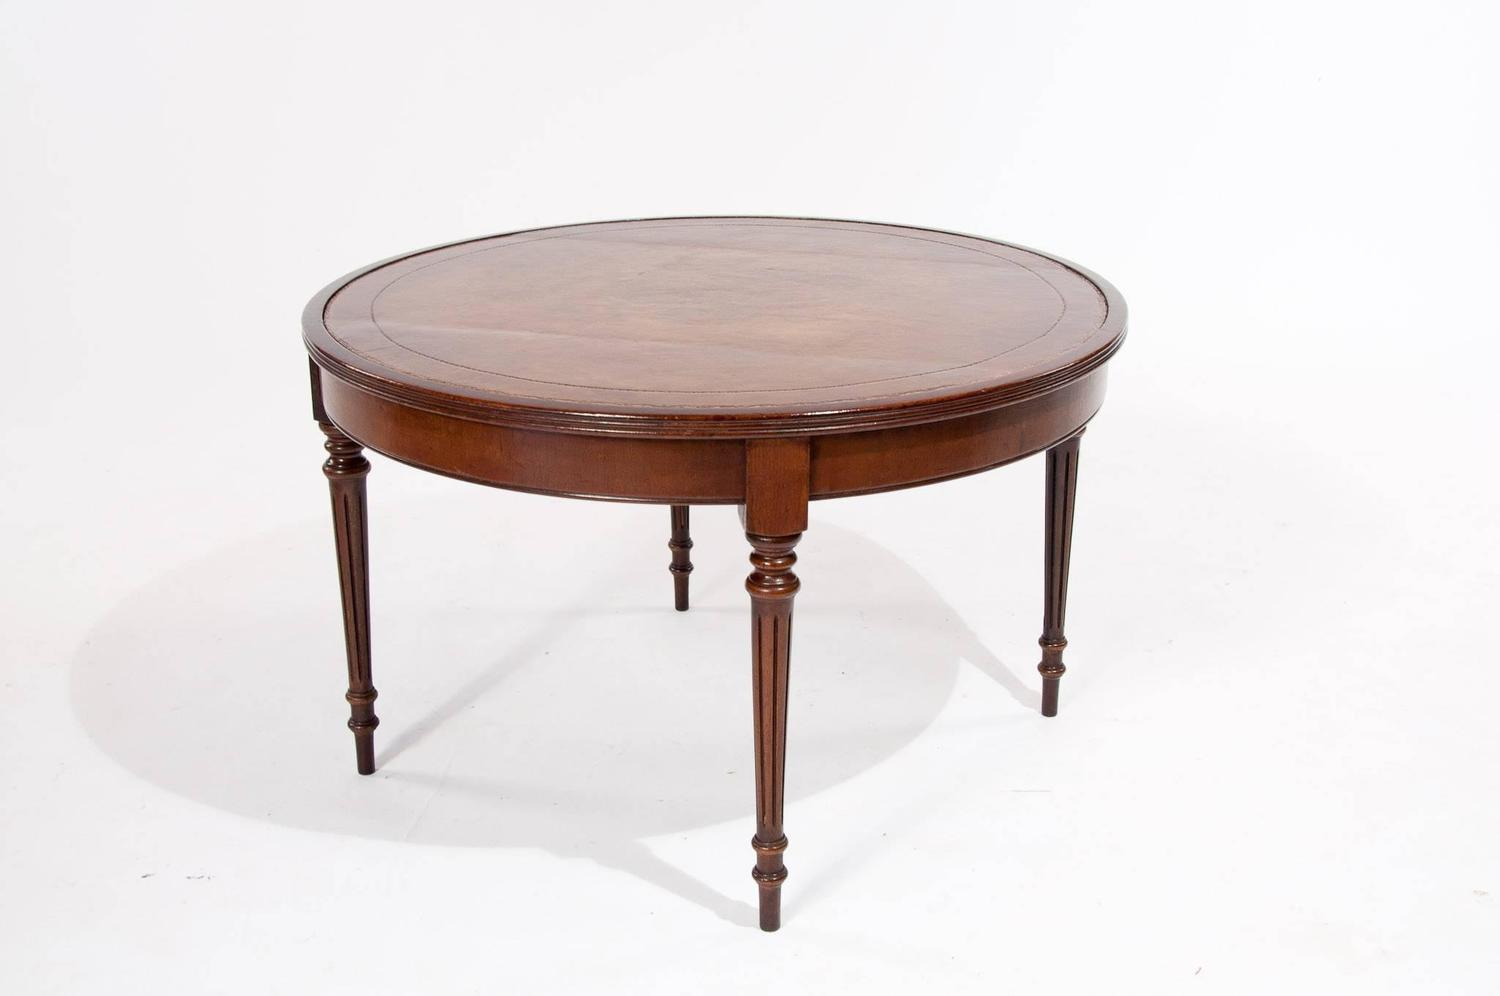 Mahogany Leather Topped Circular Coffee Table At 1stdibs